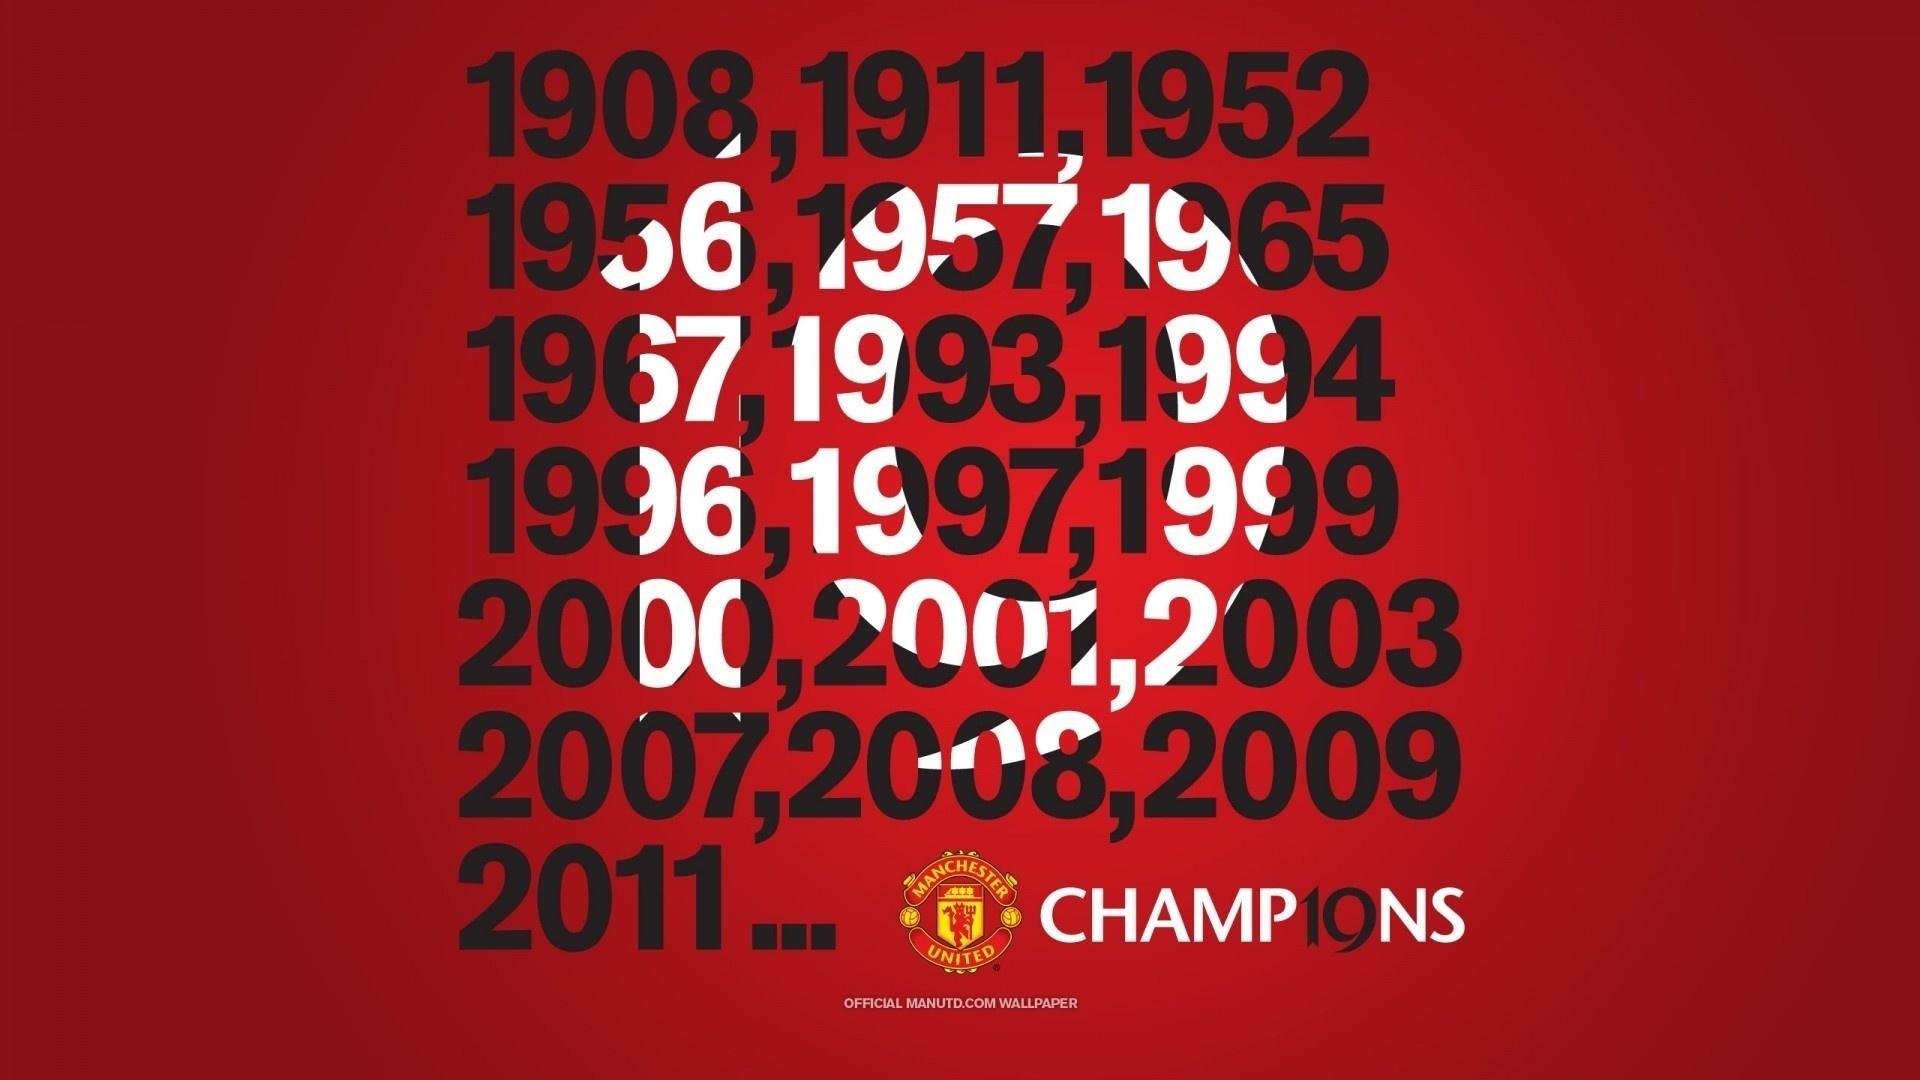 download wallpaper 1920x1080 manchester united champions year emblem full hd 1080p hd background download wallpaper 1920x1080 manchester